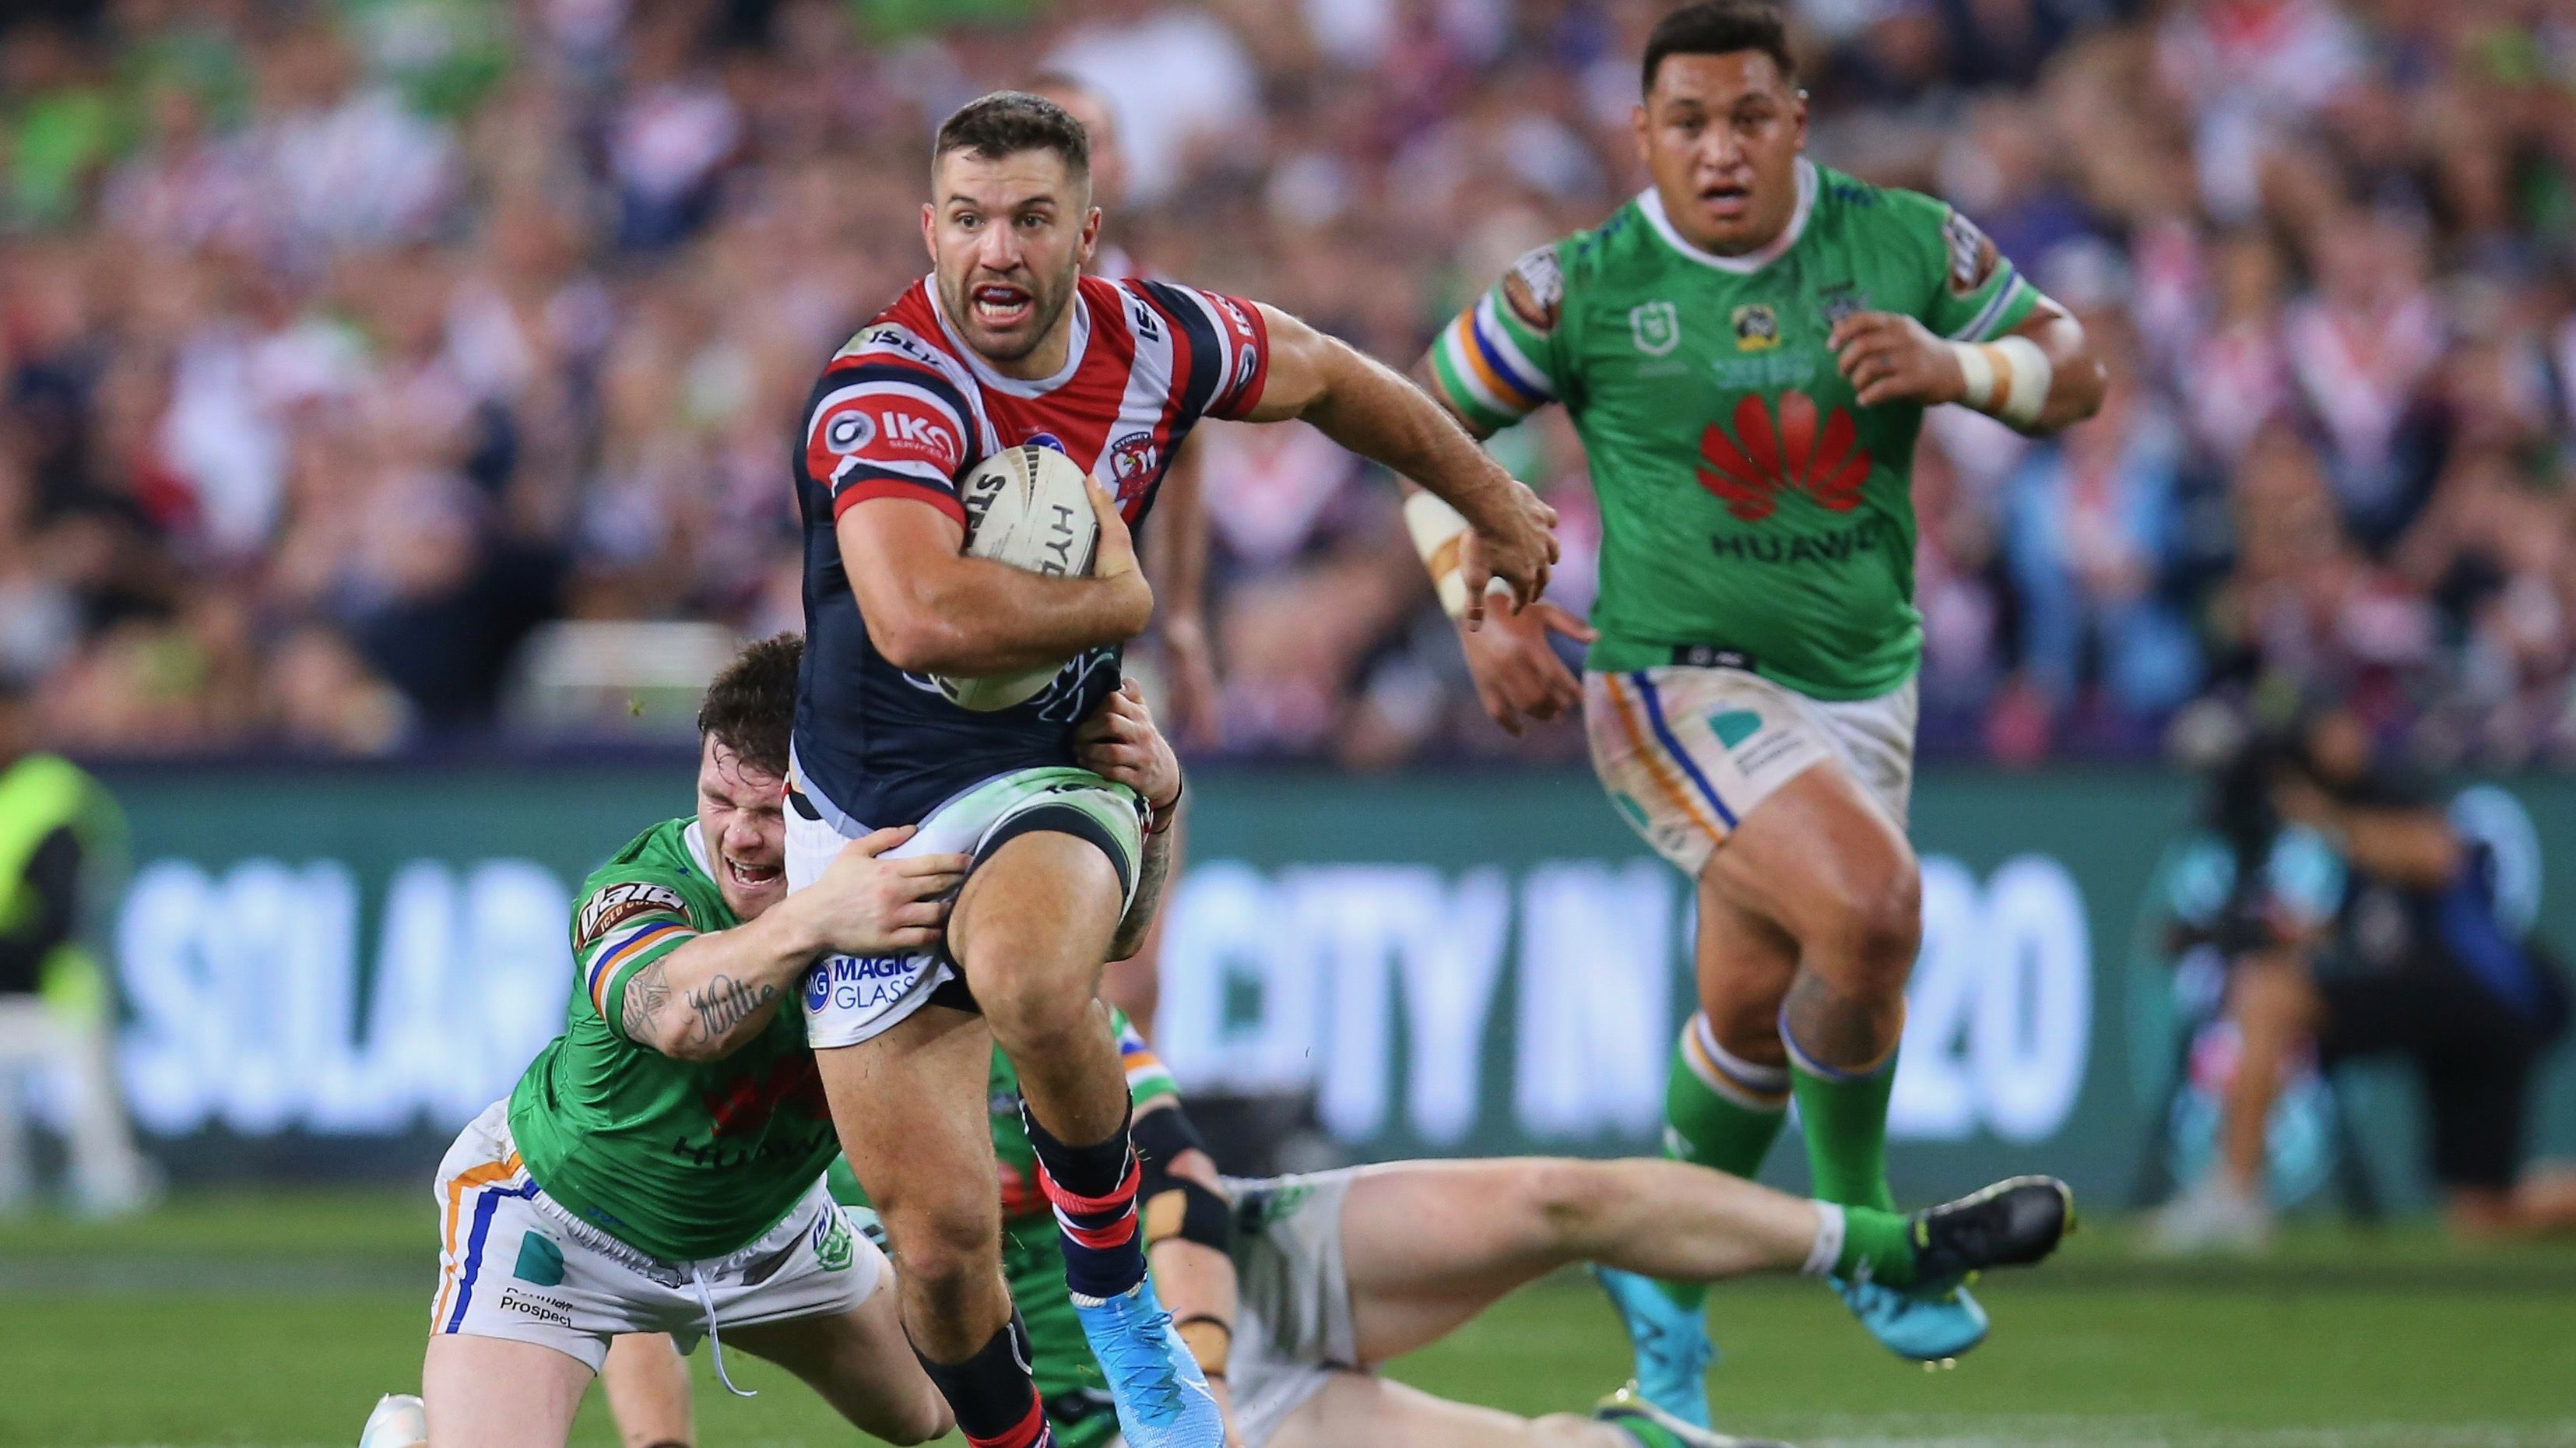 How To Watch The Nrl Live Stream Every 2020 Fixture And Round Online From Anywhere In 2020 Rugby League Nrl Super Rugby